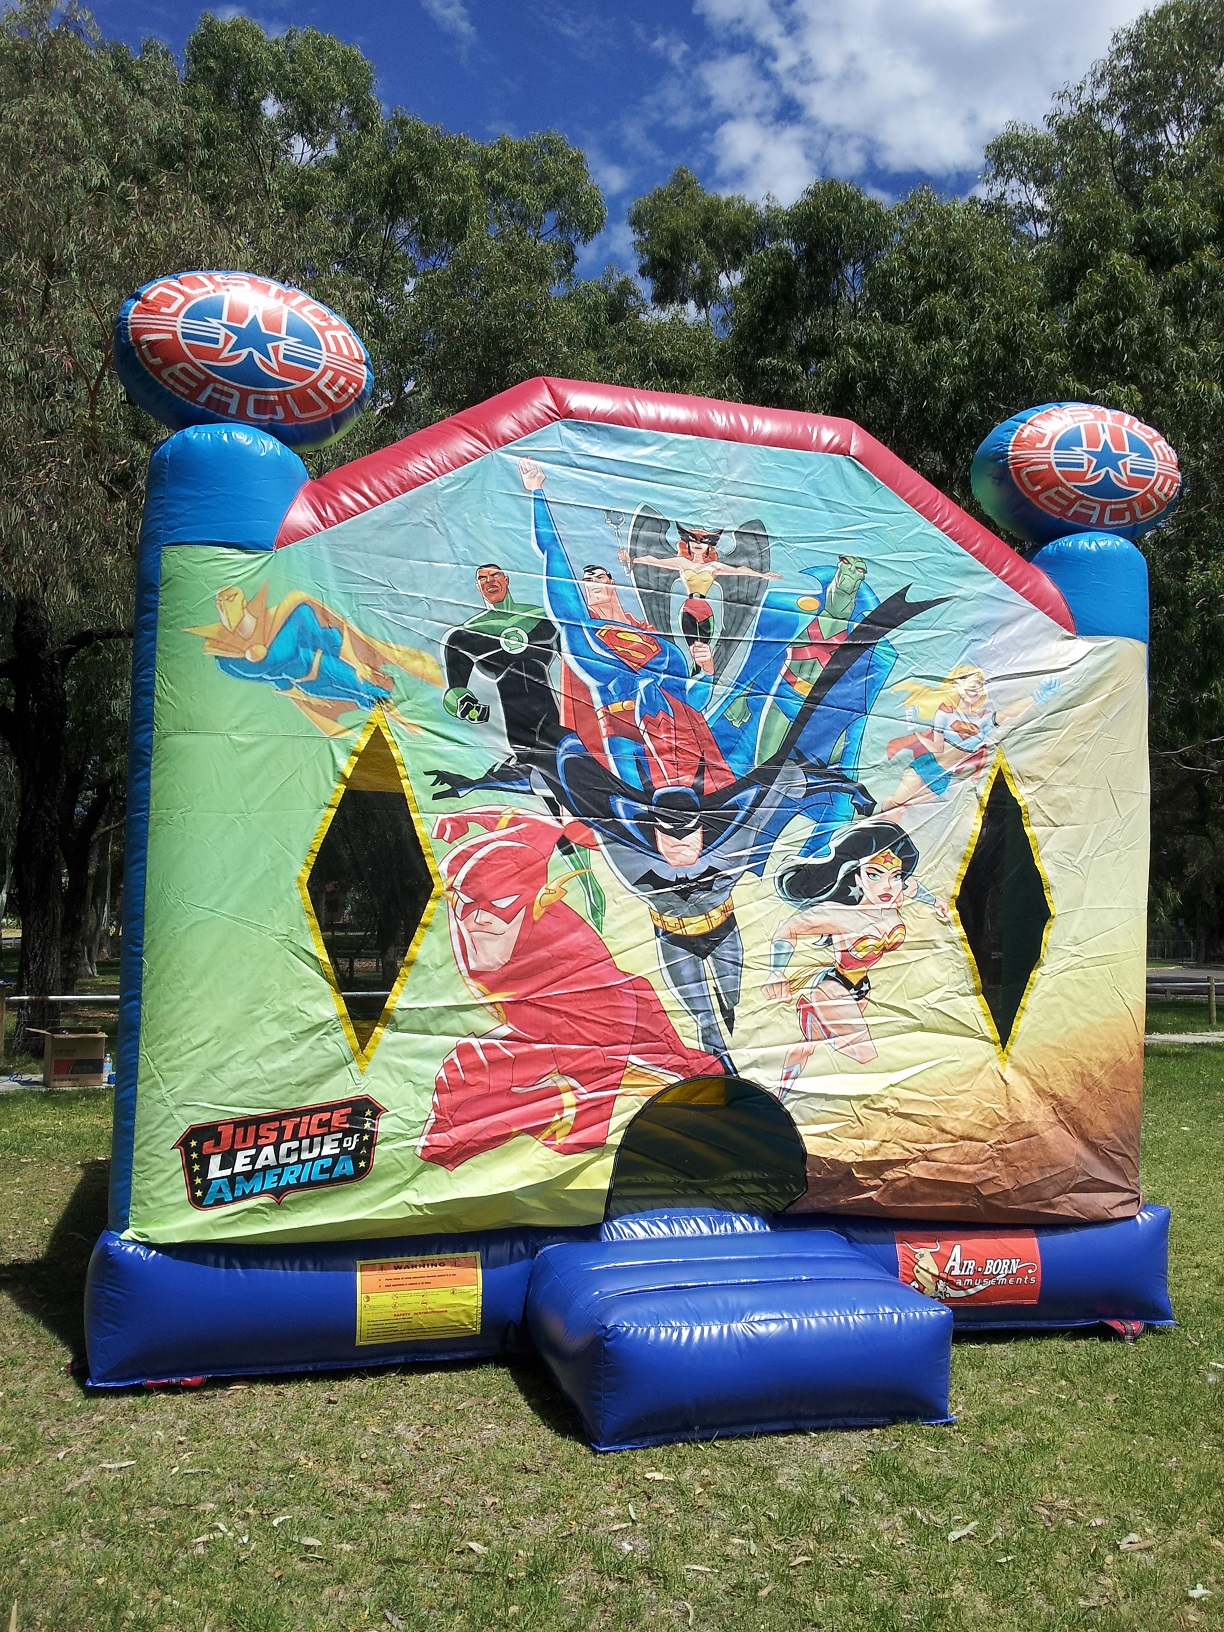 Super Heroes Bouncy Castle is free to hire with our Triple Bounce package deal  - OR$200 AS PART OF OUR DOUBLE BOUNCE PACKAGE DEAL